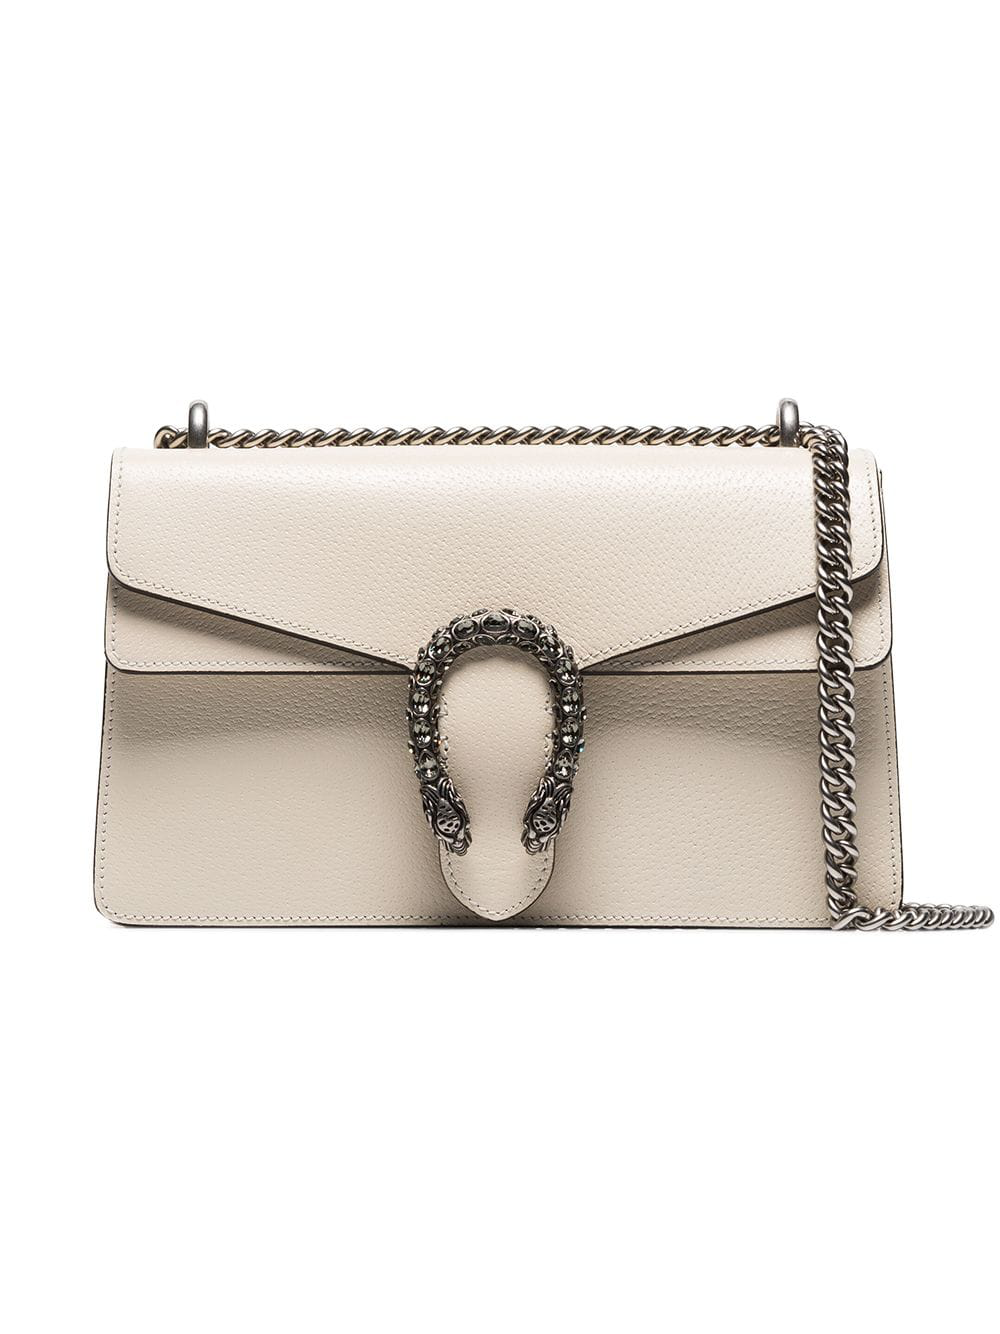 5bc9df1a179c5 Gucci White Dionysus Small Leather Shoulder Bag